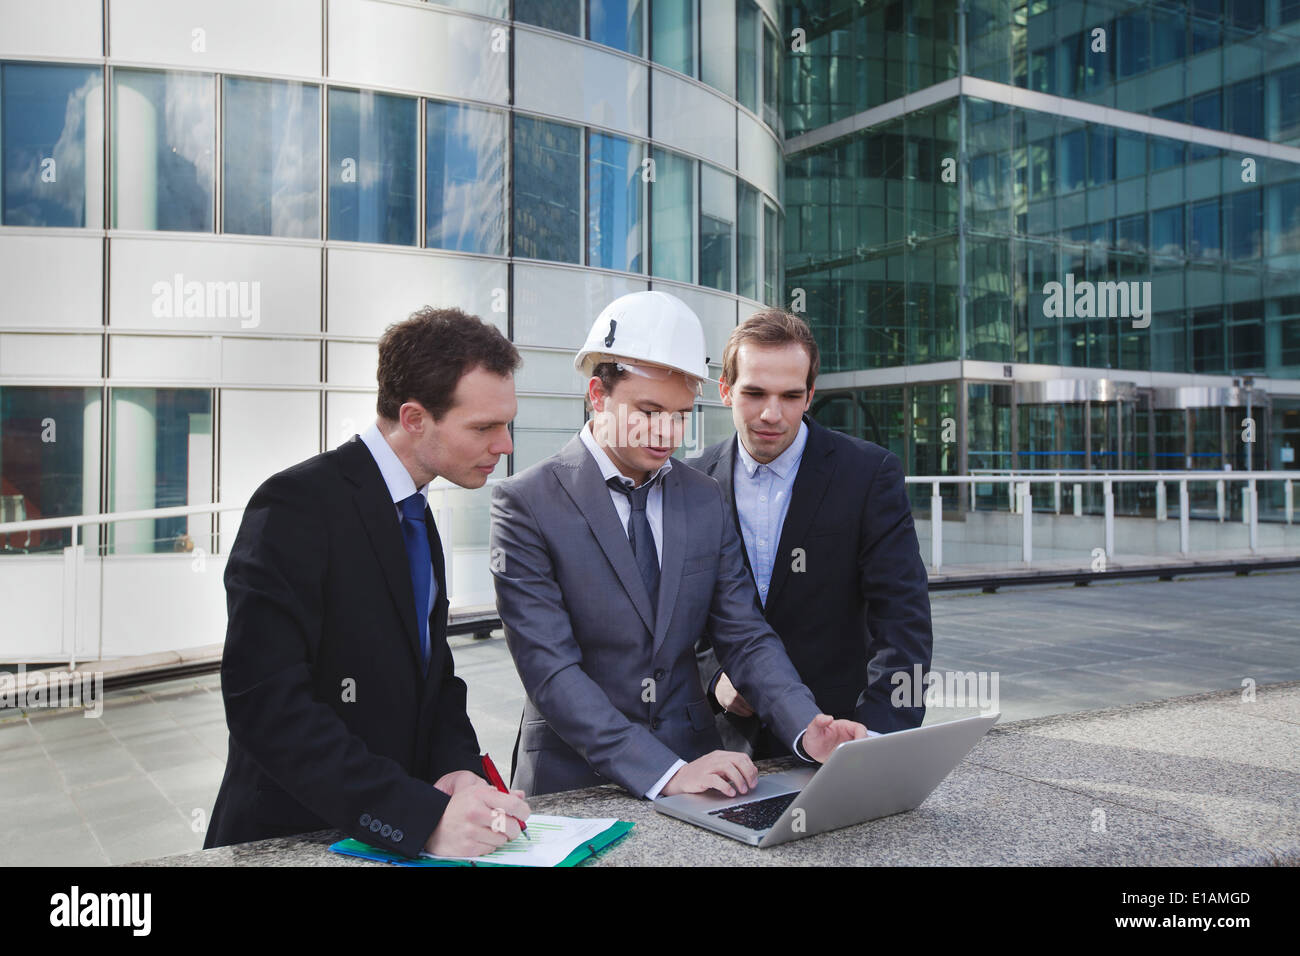 construction work project - Stock Image